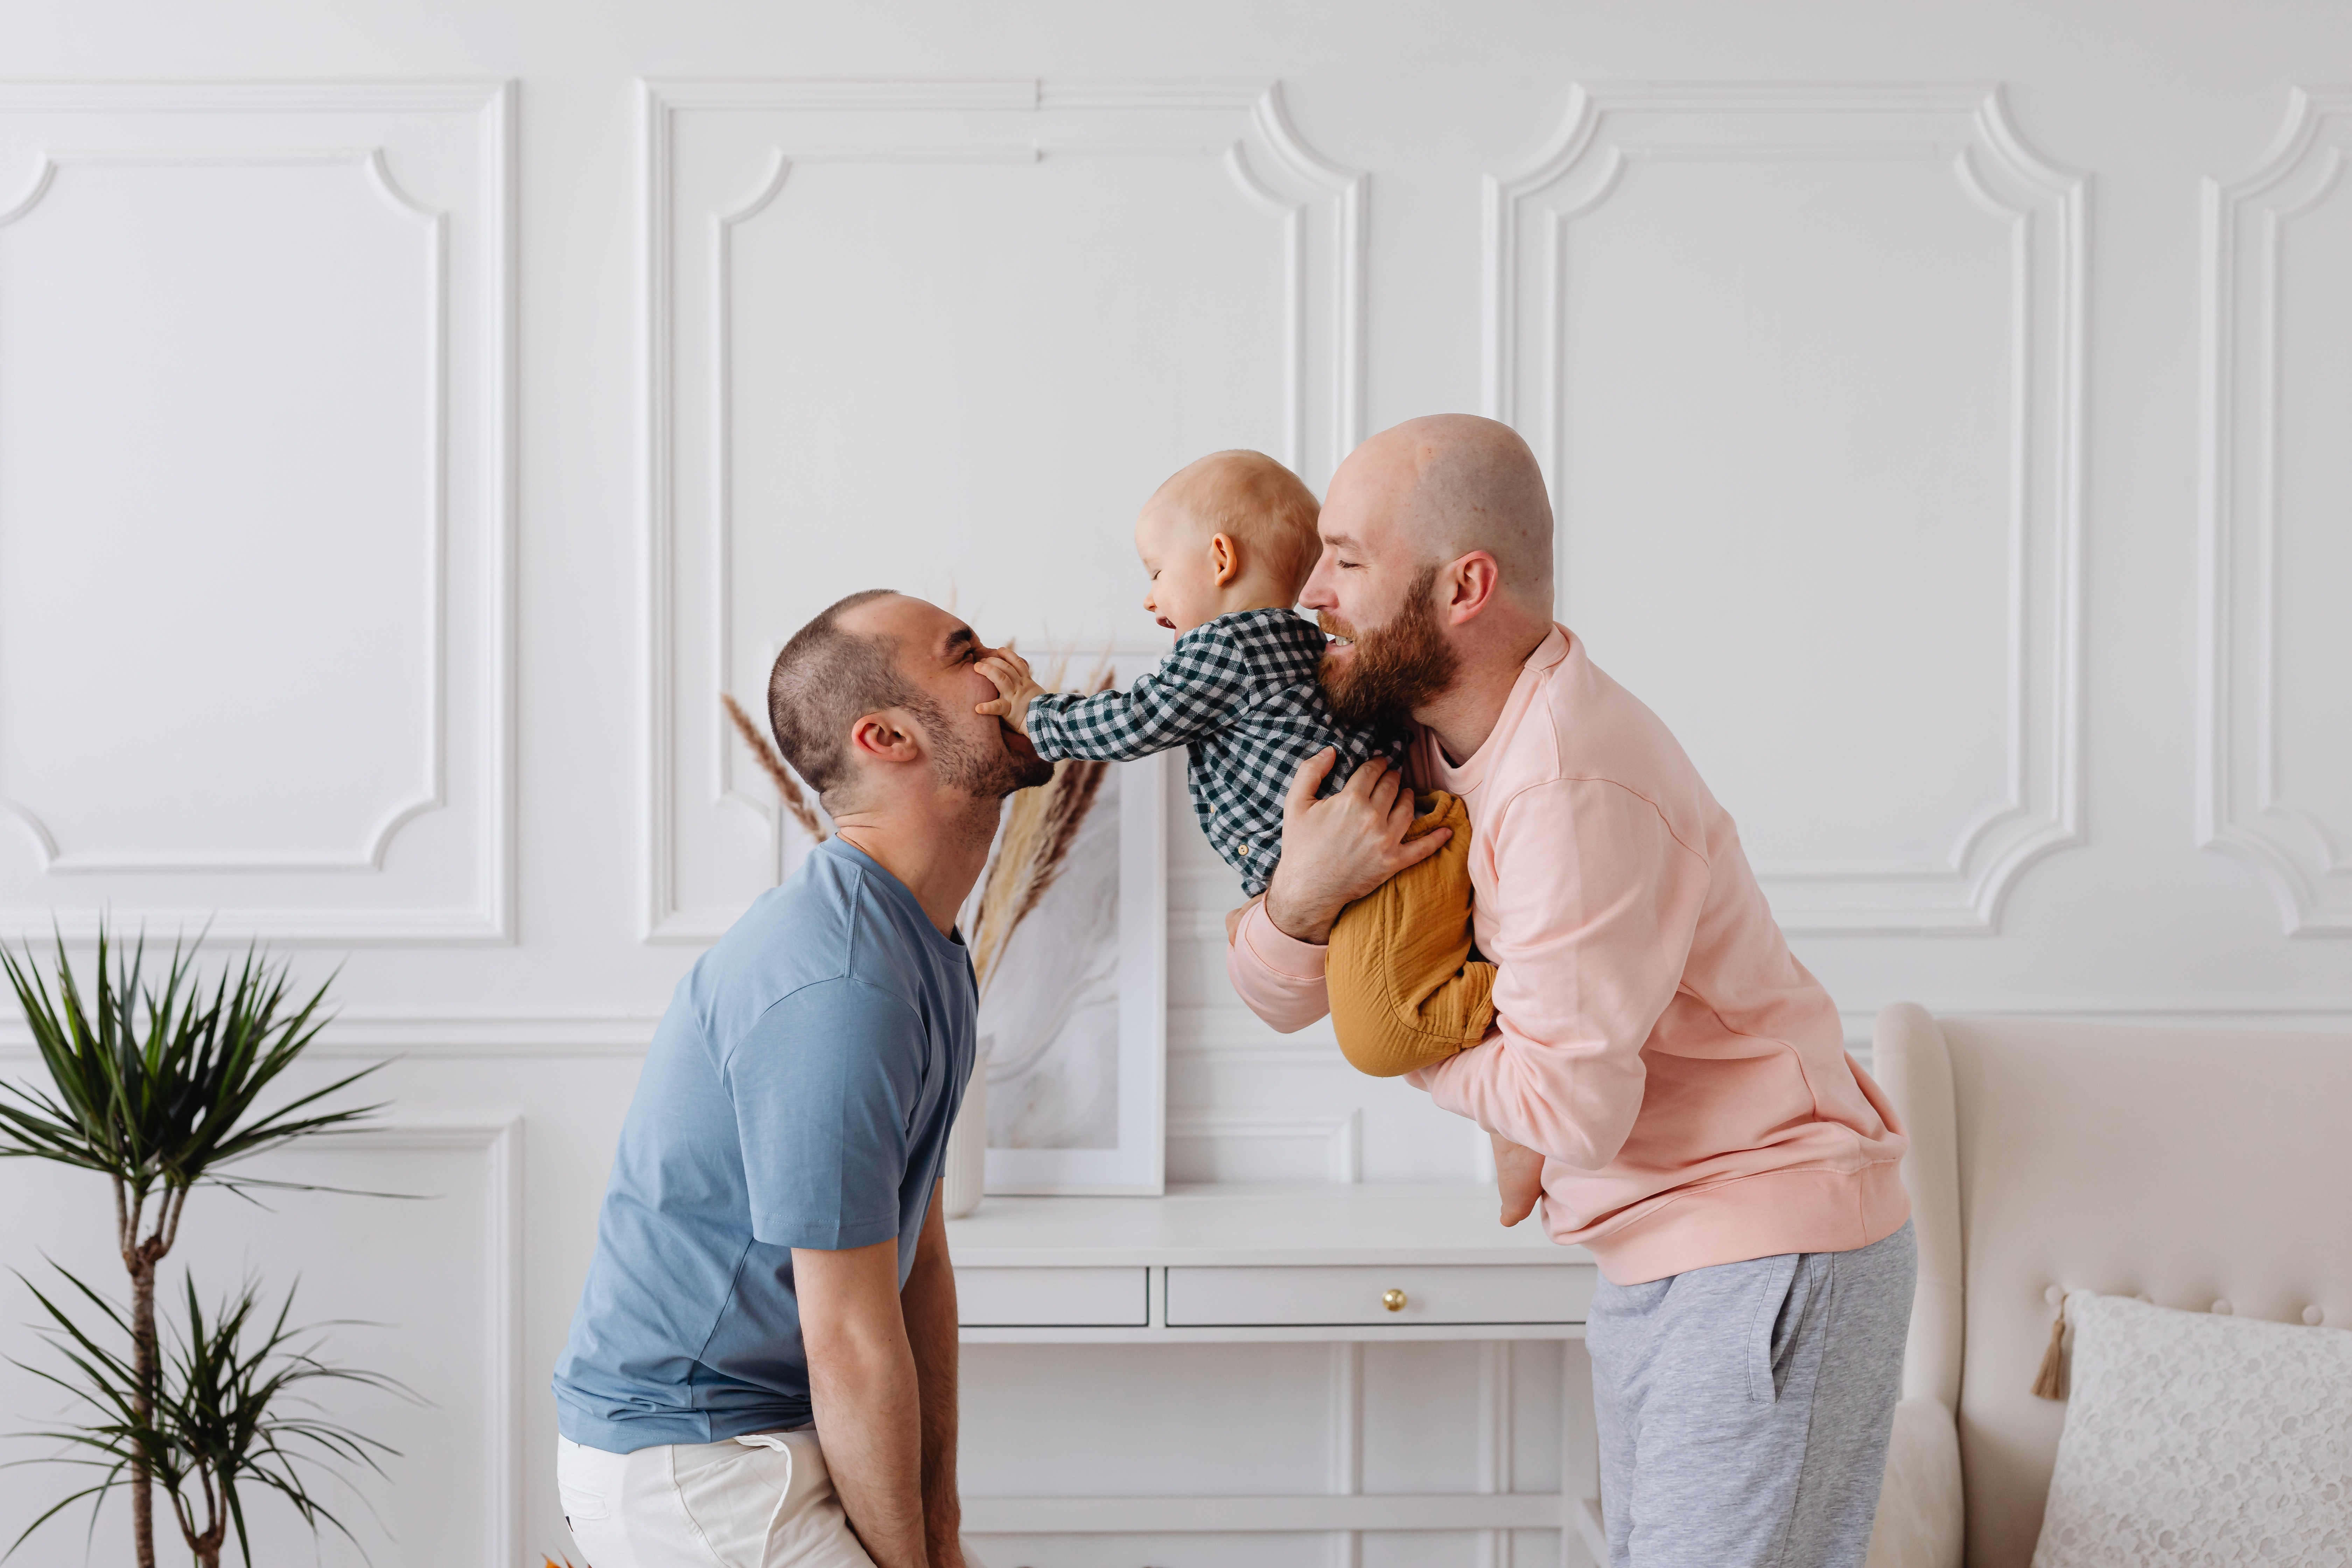 Image of a same sex couple with their baby (photo by karolina-grabowska on Pexels